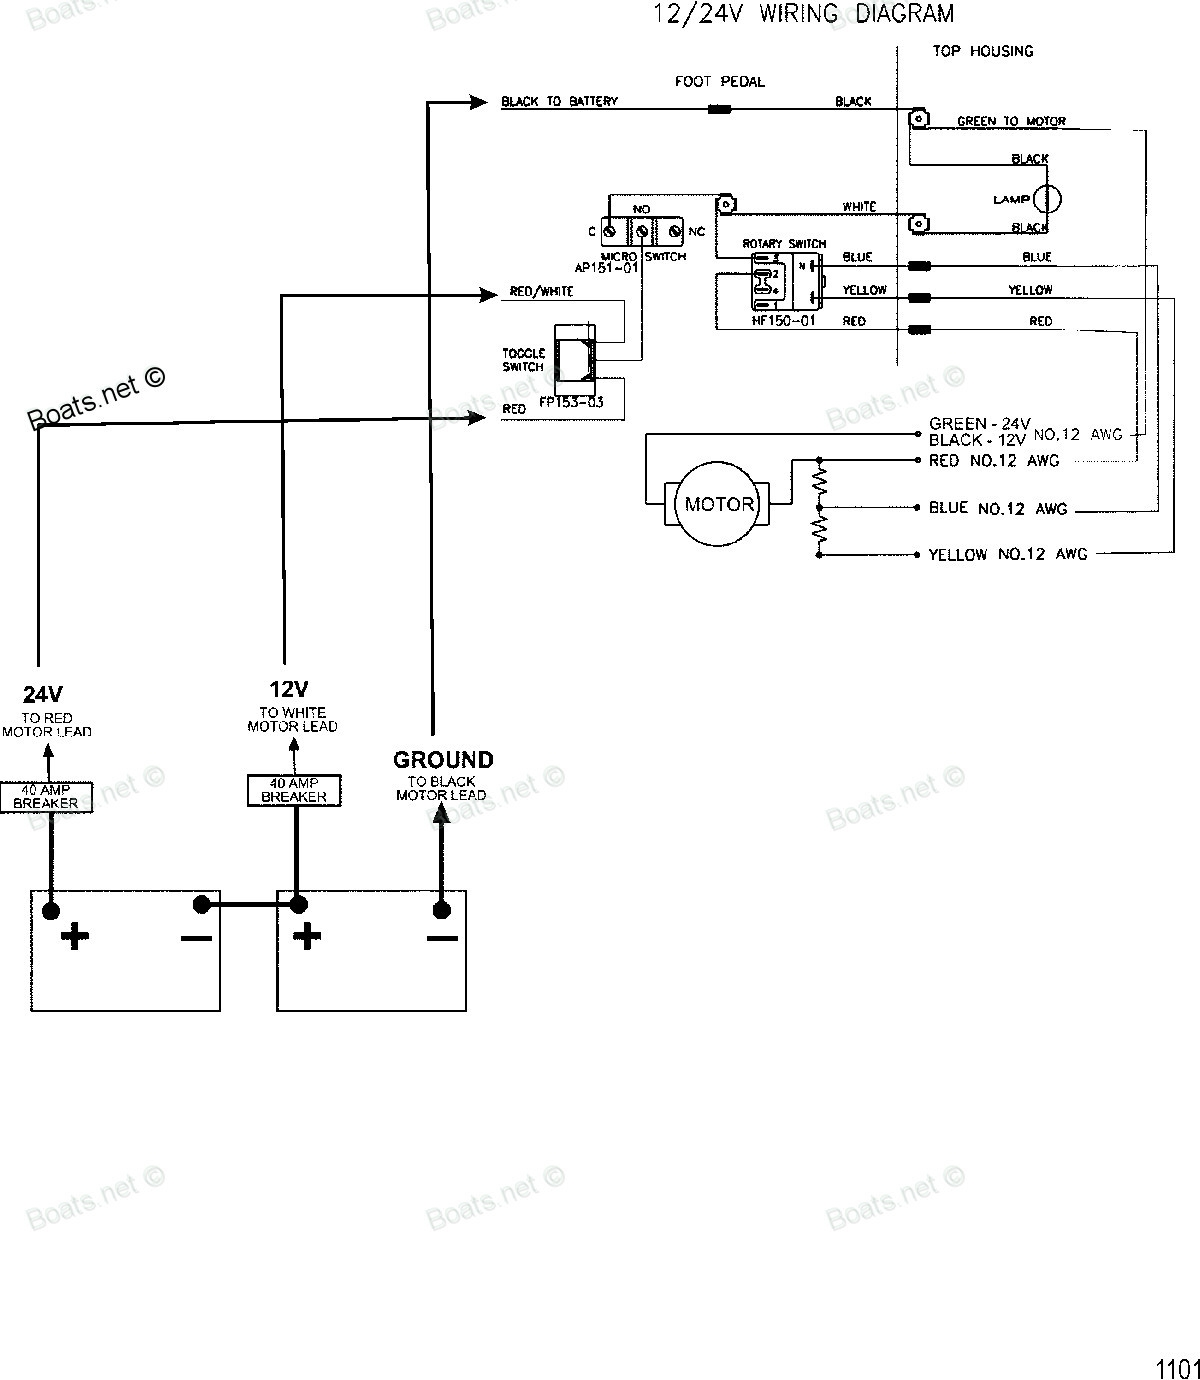 Omc Wiring Diagrams Free | Wiring Diagram on johnson wiring diagram, omg wiring diagram, regal wiring diagram, omc schematic diagrams, atlas wiring diagram, ace wiring diagram, 1972 50 hp evinrude wiring diagram, clark wiring diagram, sears wiring diagram, sea ray wiring diagram, polaris wiring diagram, evinrude key switch wiring diagram, apc wiring diagram, chevrolet wiring diagram, chris craft wiring diagram, john deere wiring diagram, viking wiring diagram, nissan wiring diagram, 96 evinrude wiring diagram,